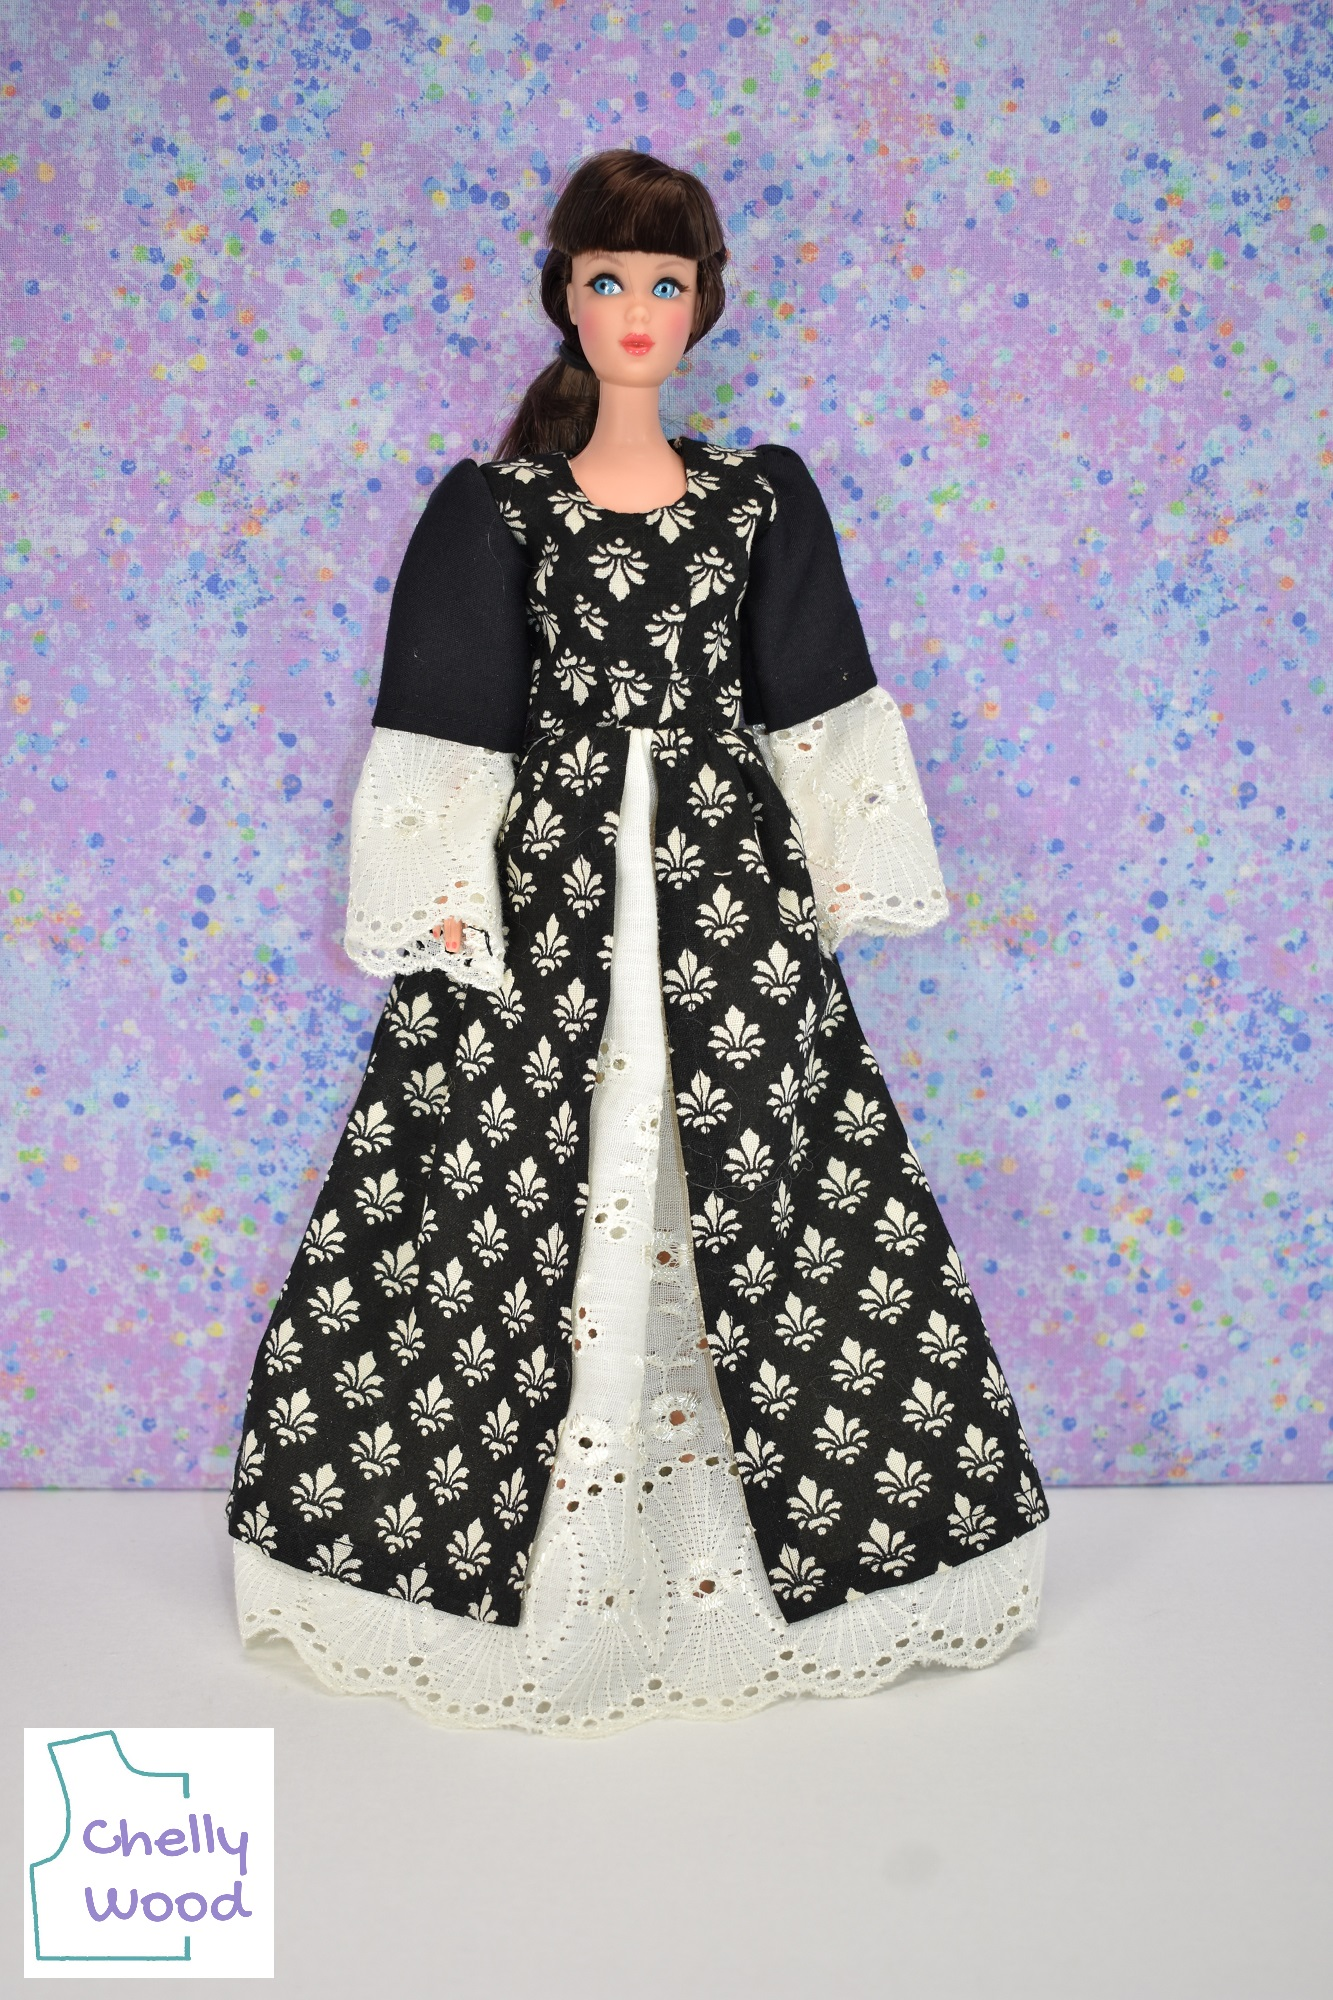 """In this photograph, a Vintage Barbie models a Renaissance princess-style ball gown or long dress. She has dark brown hair with bangs (or fringe in the UK). Her sleeves are long with two layers; the under-side layer is made of cream eyelet lace and the sleeve over the top is made of solid black fabric. The dress also has a petticoat made of cream colored eyelet fabric. This is visible at the front of the dress, as the upper layer of skirt is split from the navel down to the floor. The bodice and top layer of skirt are made of black cotton fabric printed with tiny """"fleur de lis"""" patterns like a Renaissance era dress that had been embroidered or woven as a tapestry. The watermark on this image reminds us that the free printable PDF sewing pattern and tutorial videos for making this dress can be found at Chelly Wood dot com."""